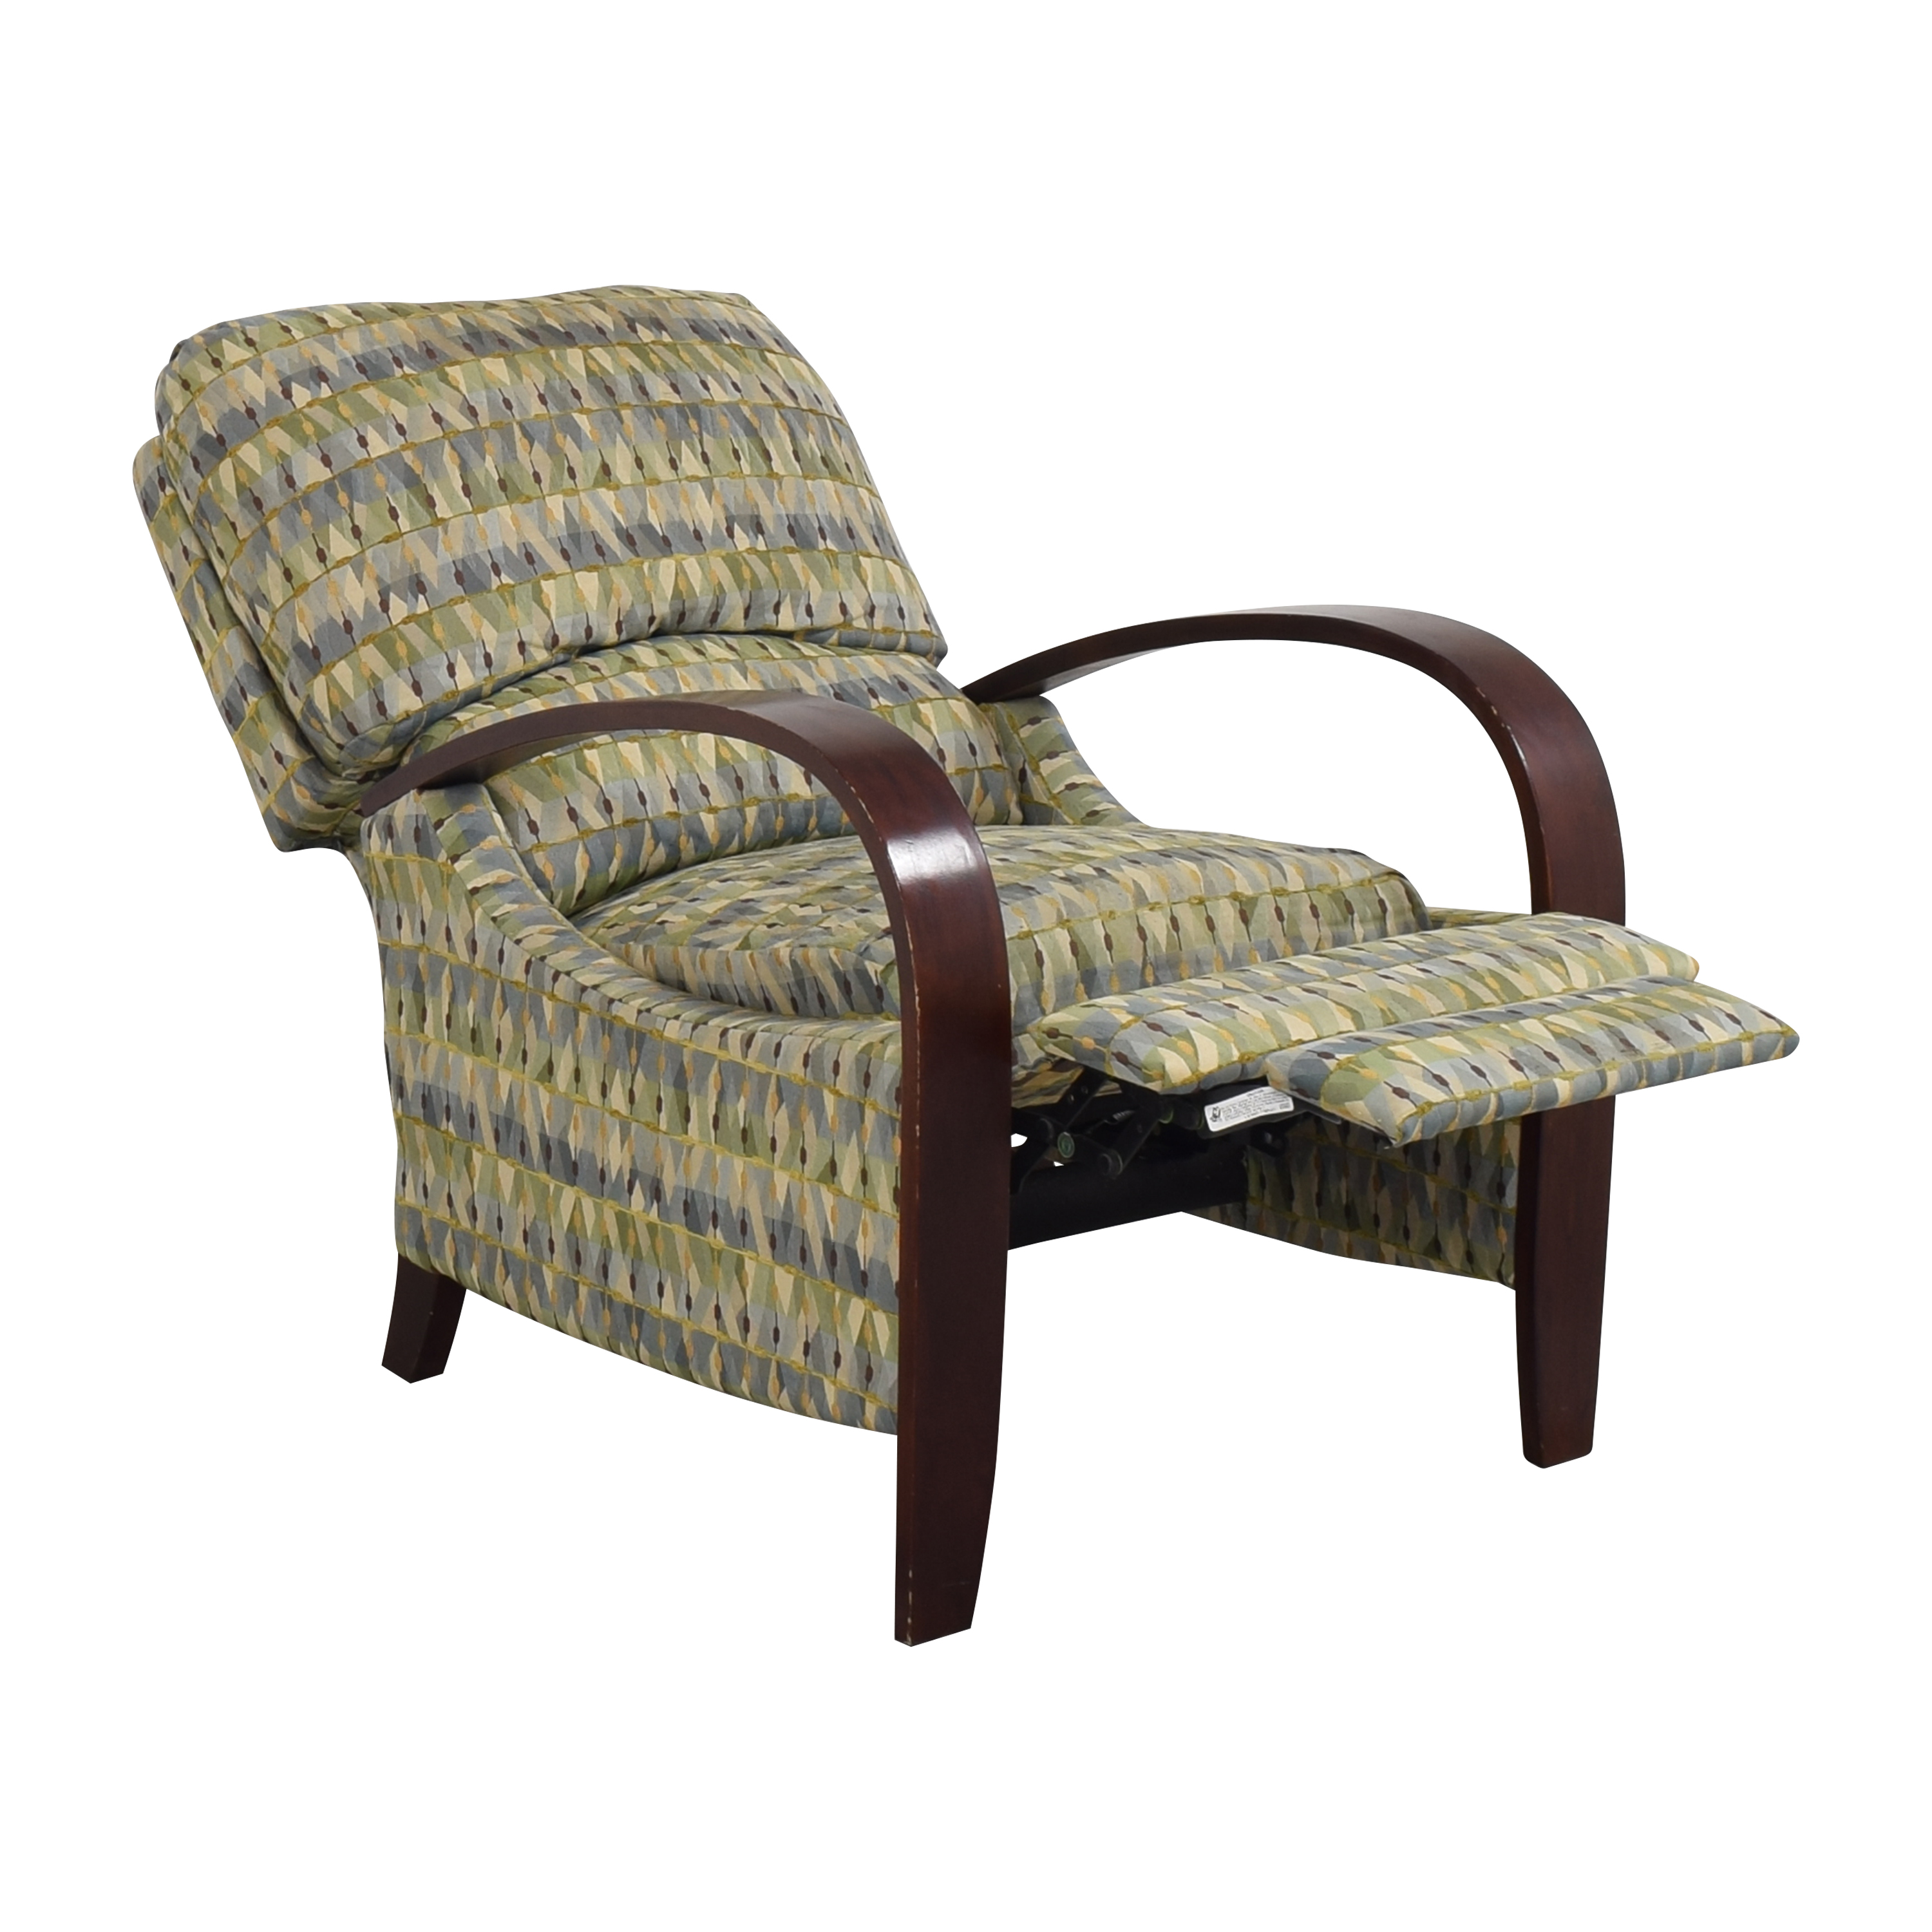 buy Raymour & Flanigan Patterned Recliner Raymour & Flanigan